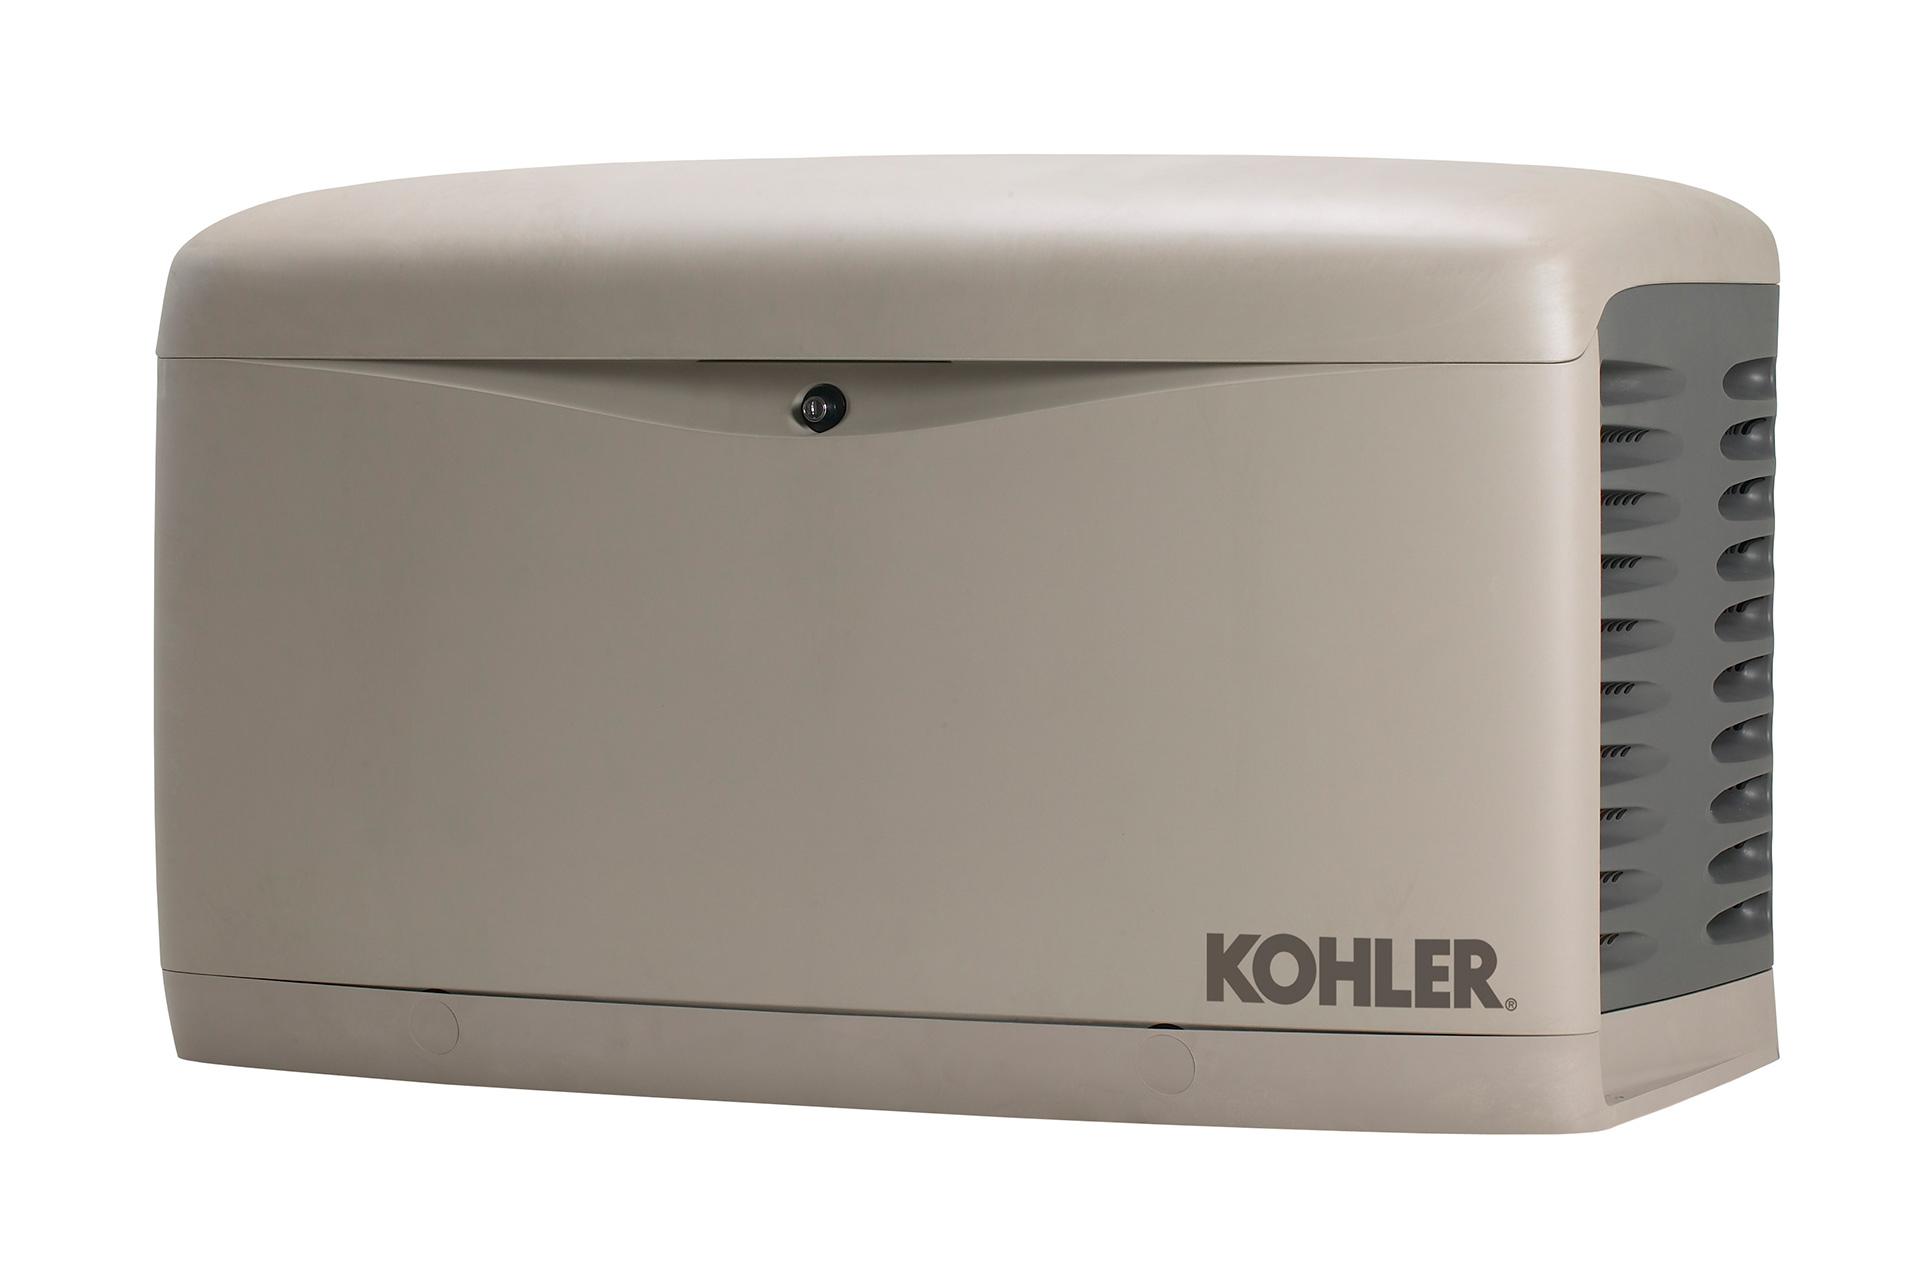 https://lakecontractingcelina.com/files/uploads/2021/02/KohlerGen.jpg